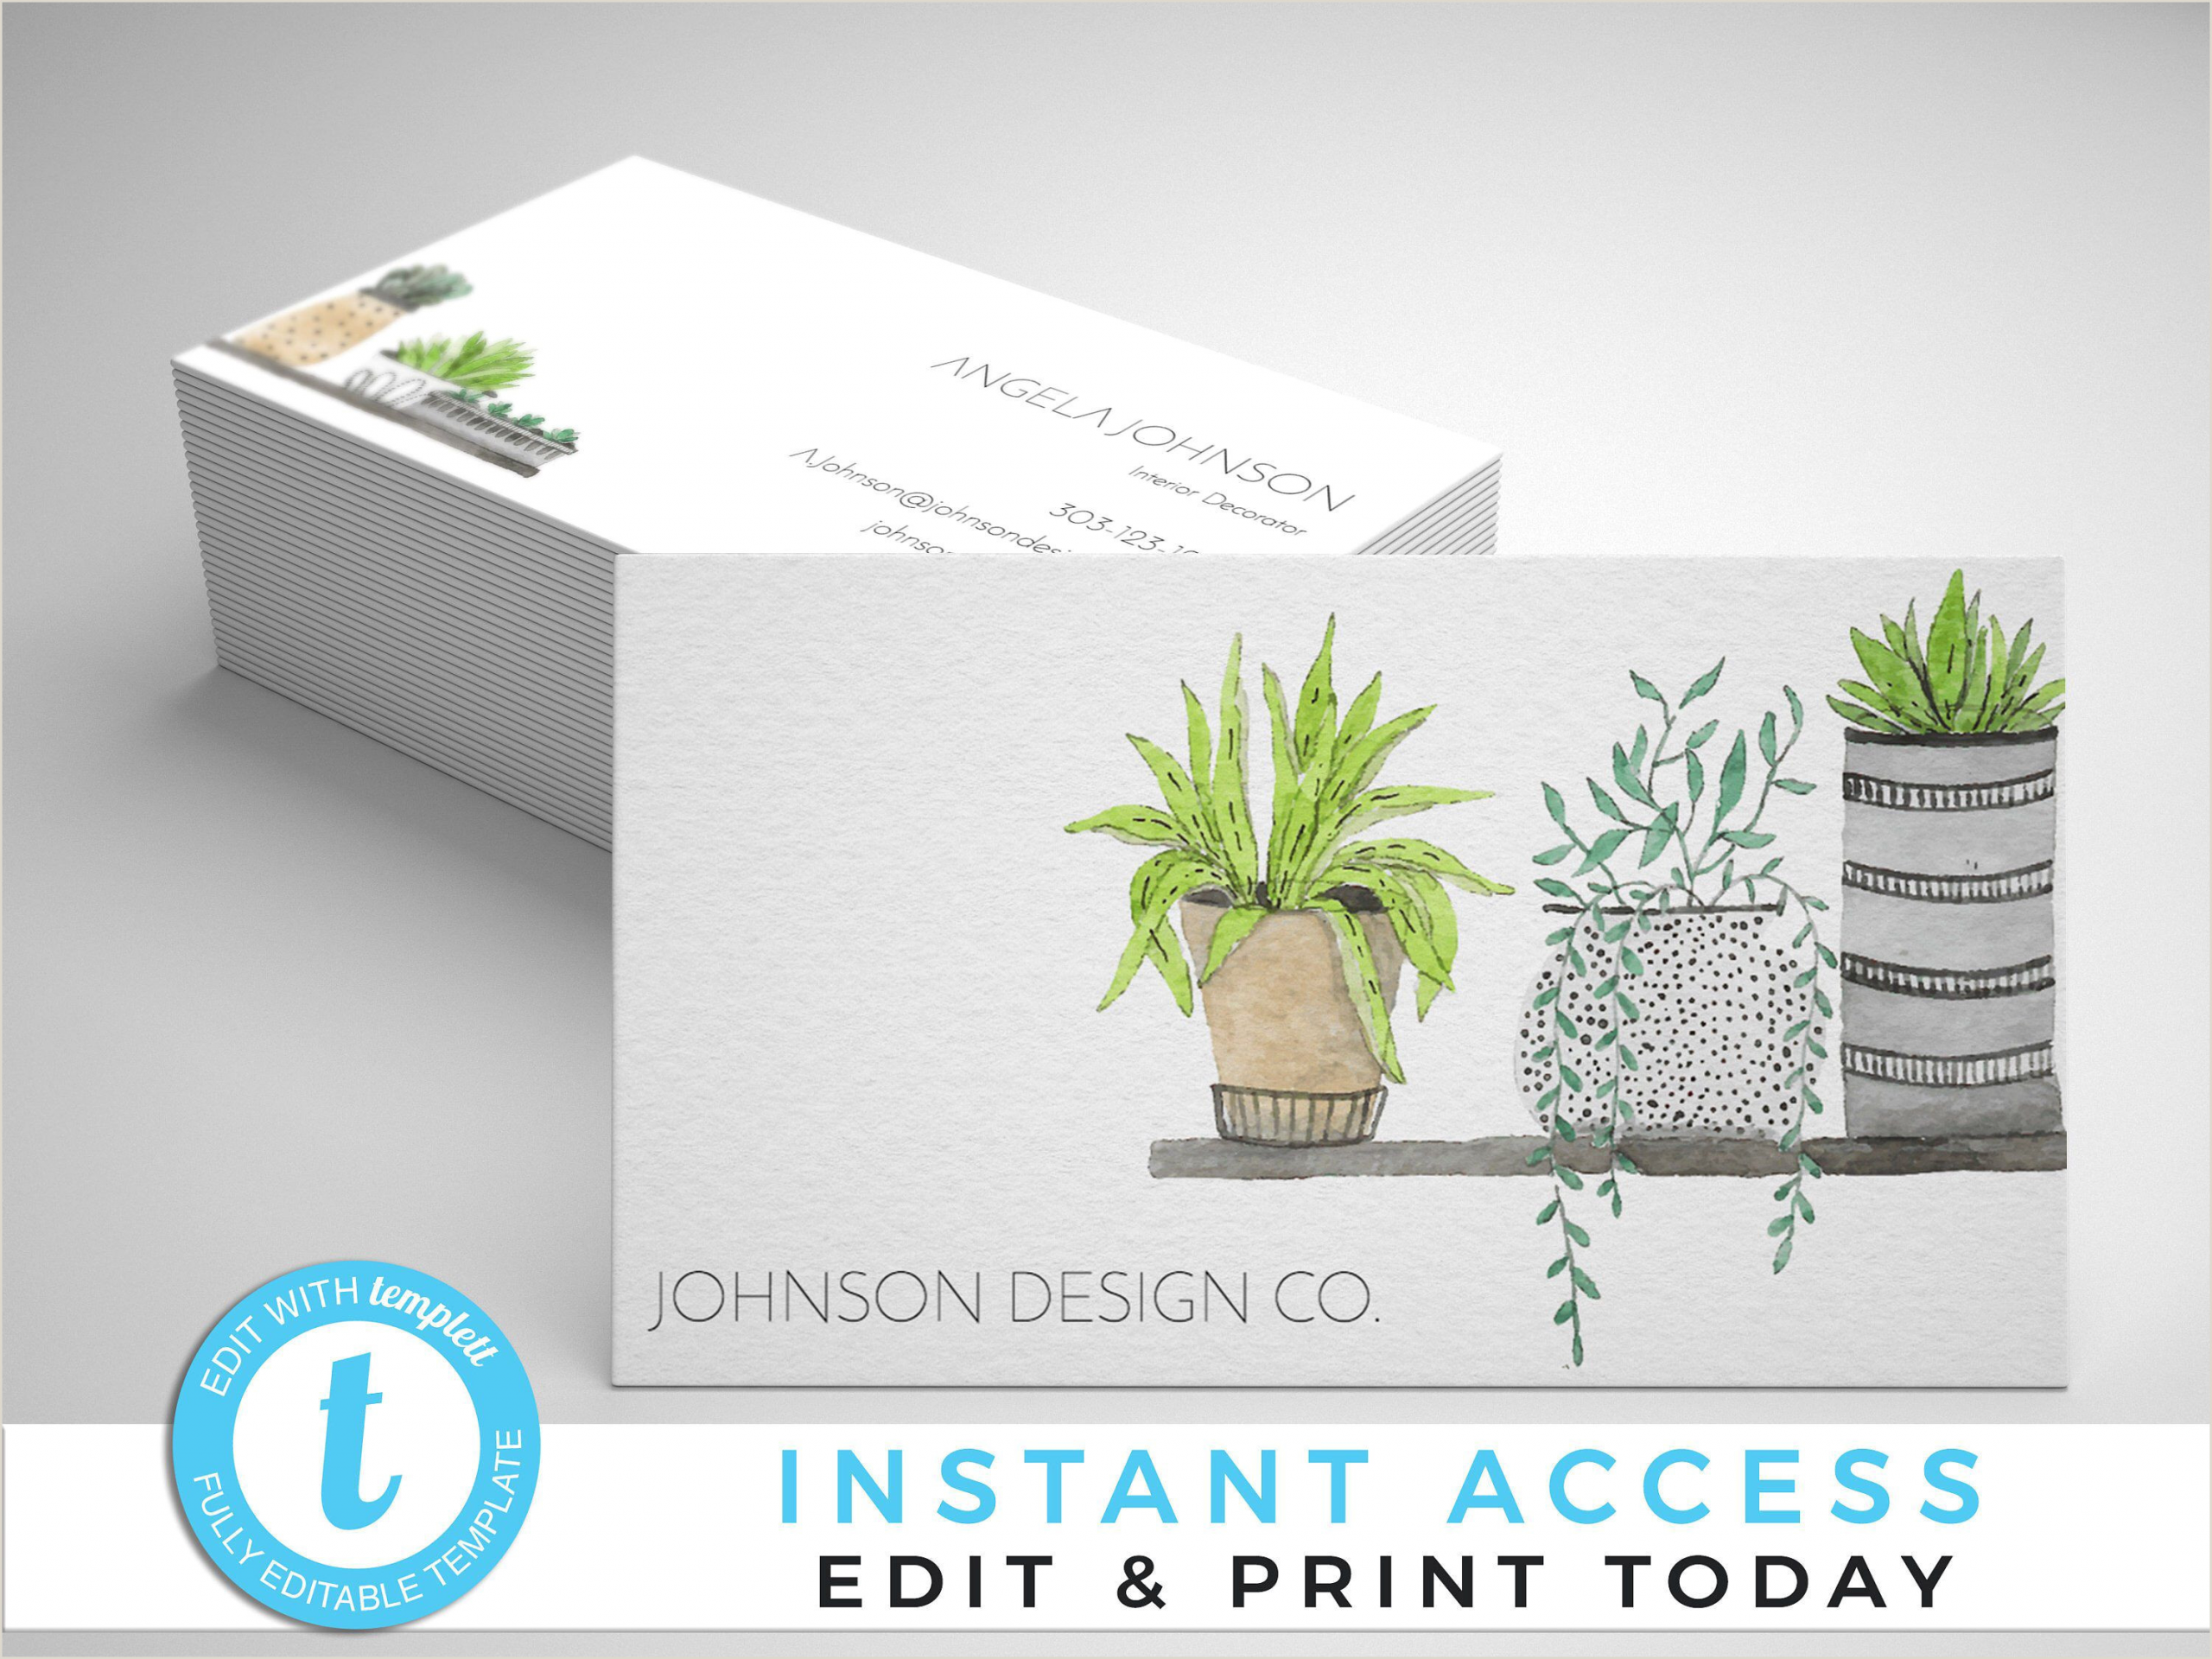 We Buy Houses Business Card Templates This Item Is Unavailable Etsy